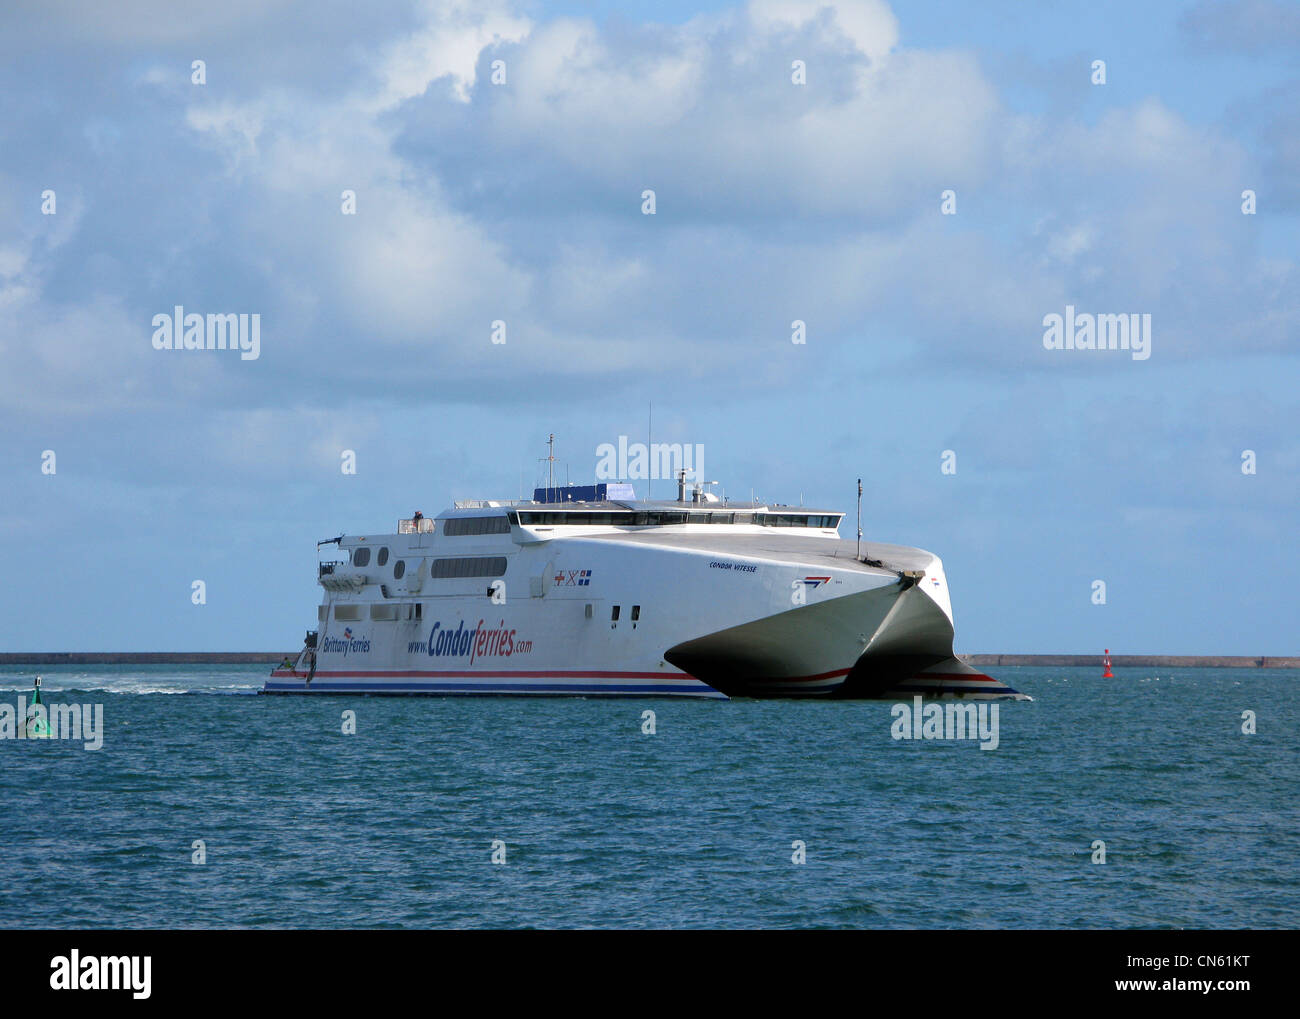 The Condor Express High Speed Ferry - Stock Image